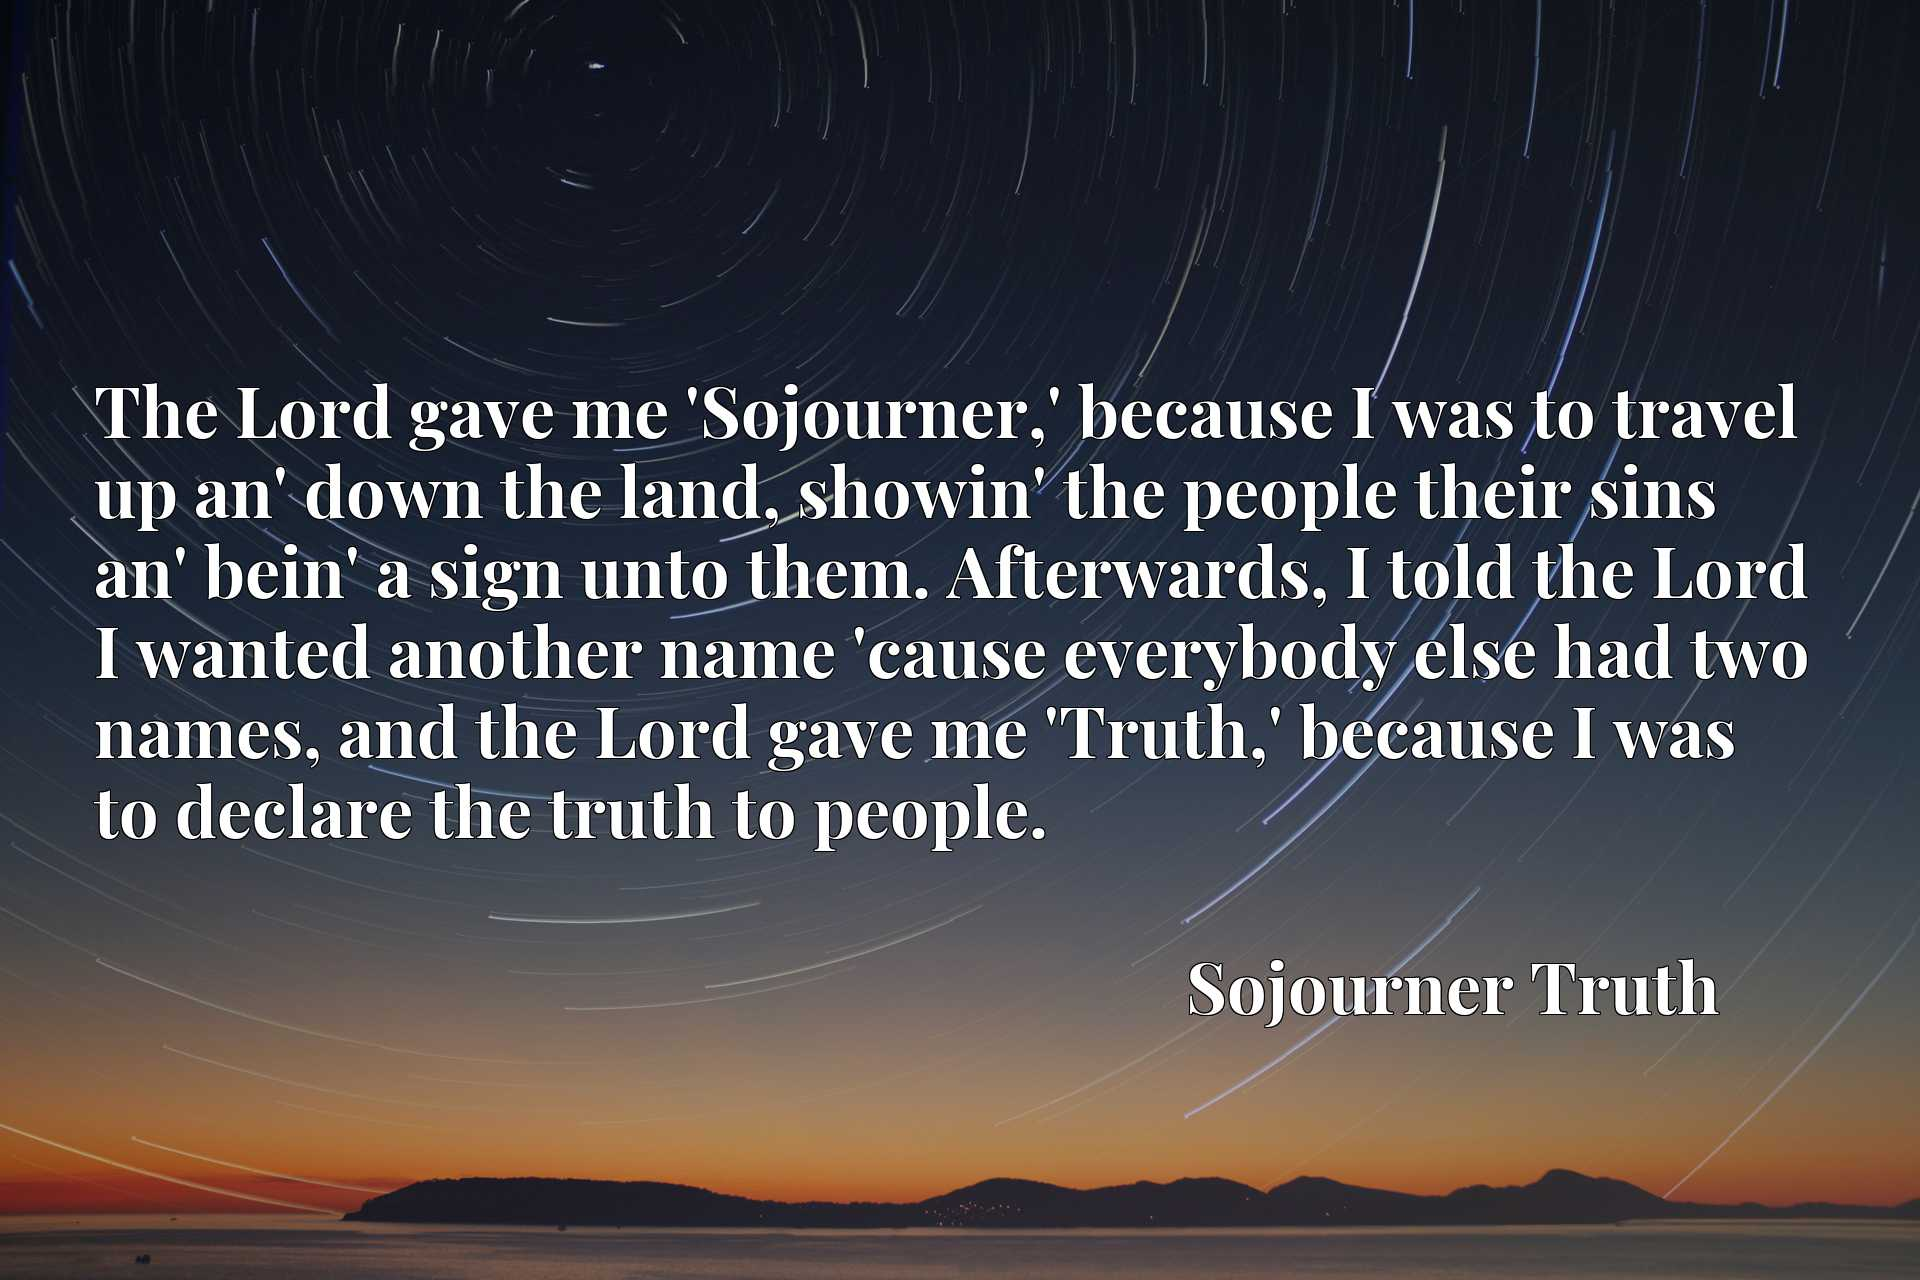 The Lord gave me 'Sojourner,' because I was to travel up an' down the land, showin' the people their sins an' bein' a sign unto them. Afterwards, I told the Lord I wanted another name 'cause everybody else had two names, and the Lord gave me 'Truth,' because I was to declare the truth to people.